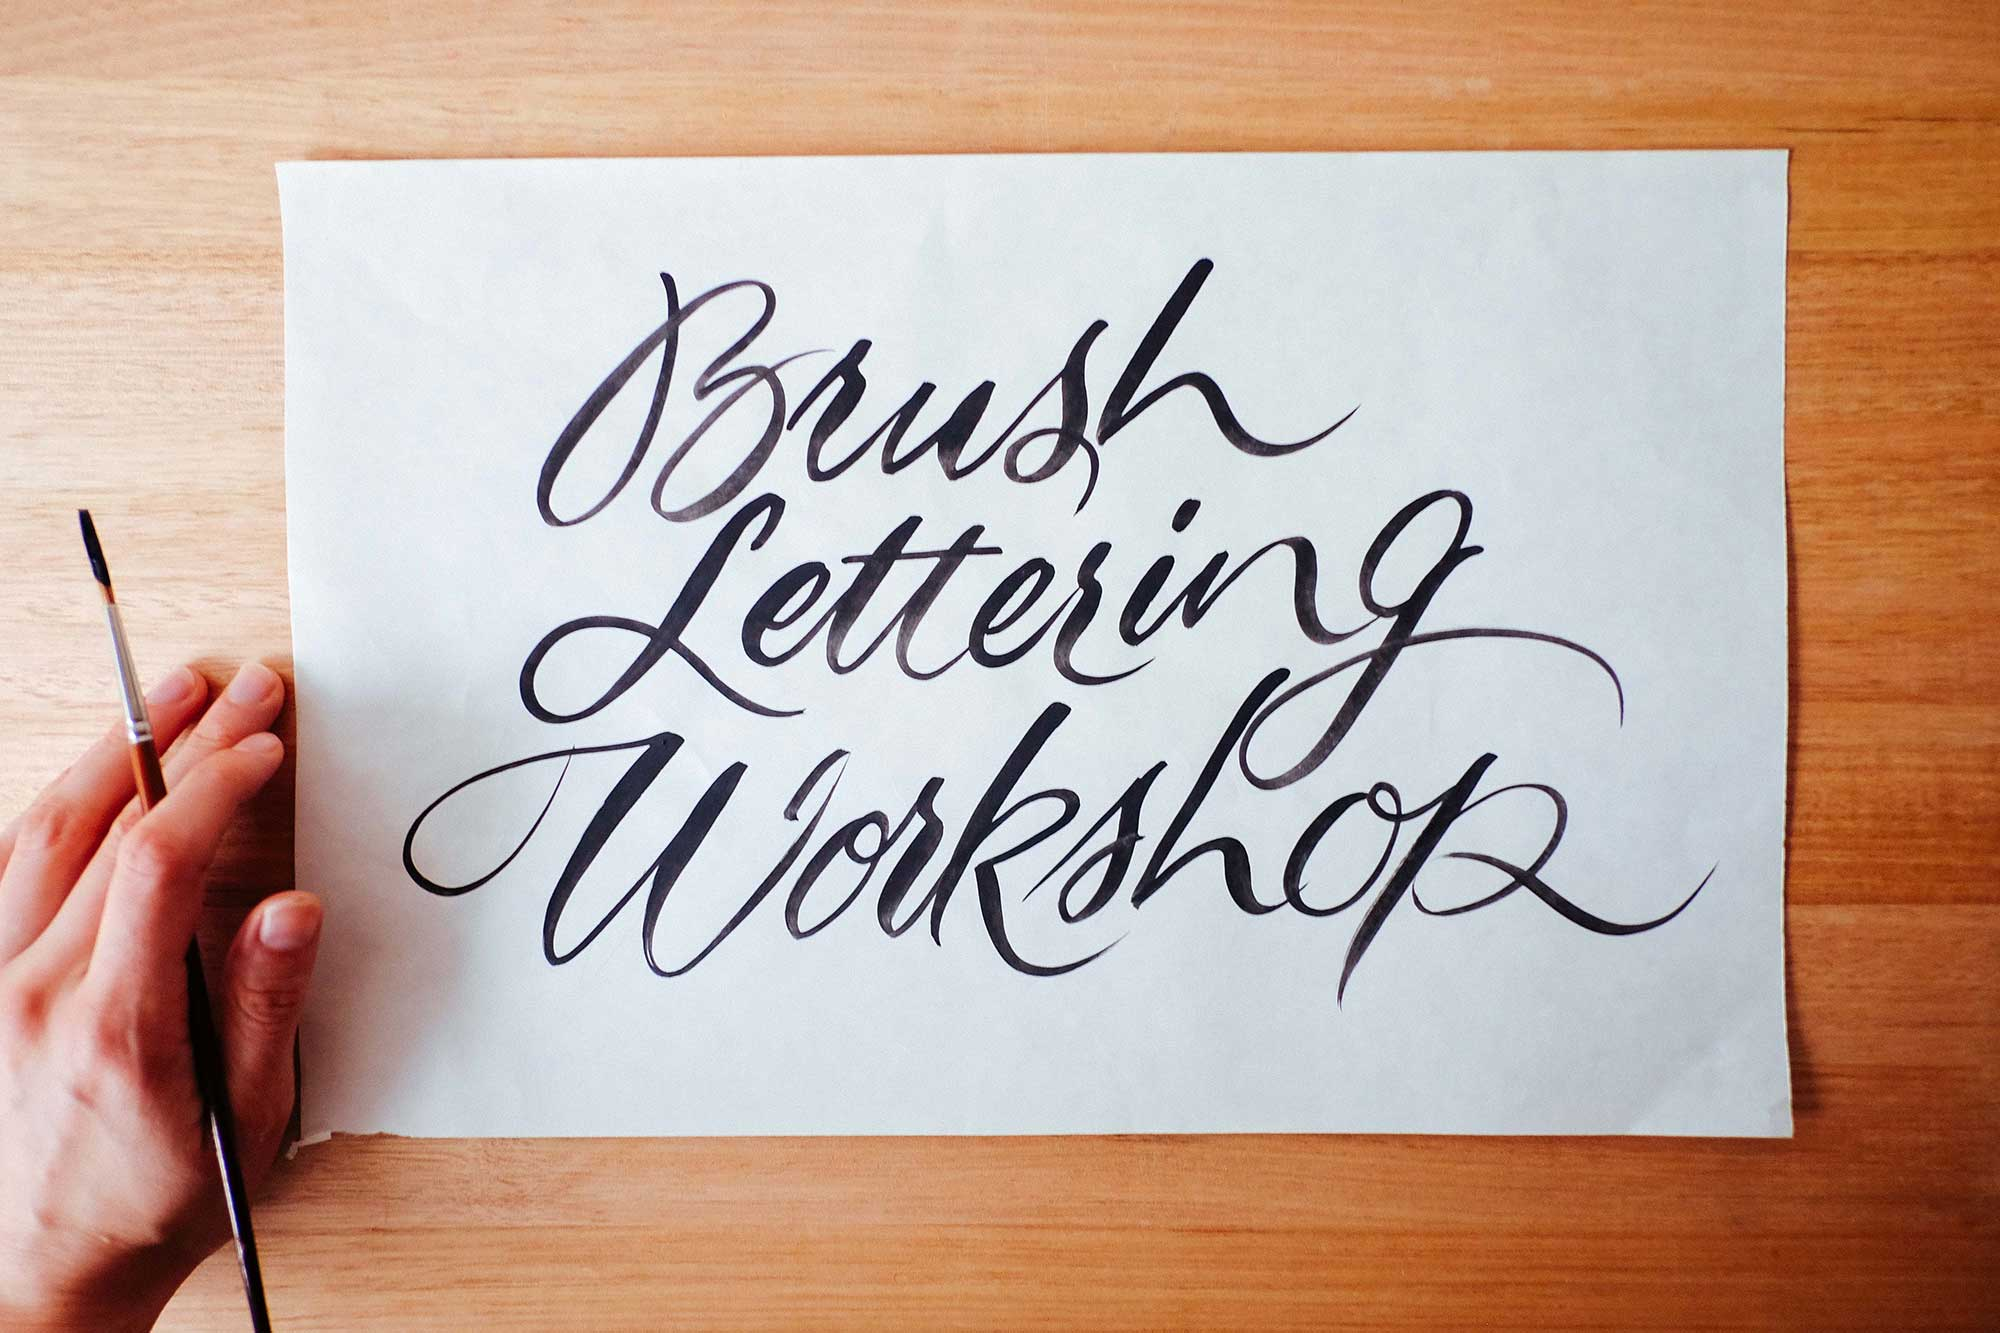 Brush Lettering Workshop, London 12th-13th August 2017